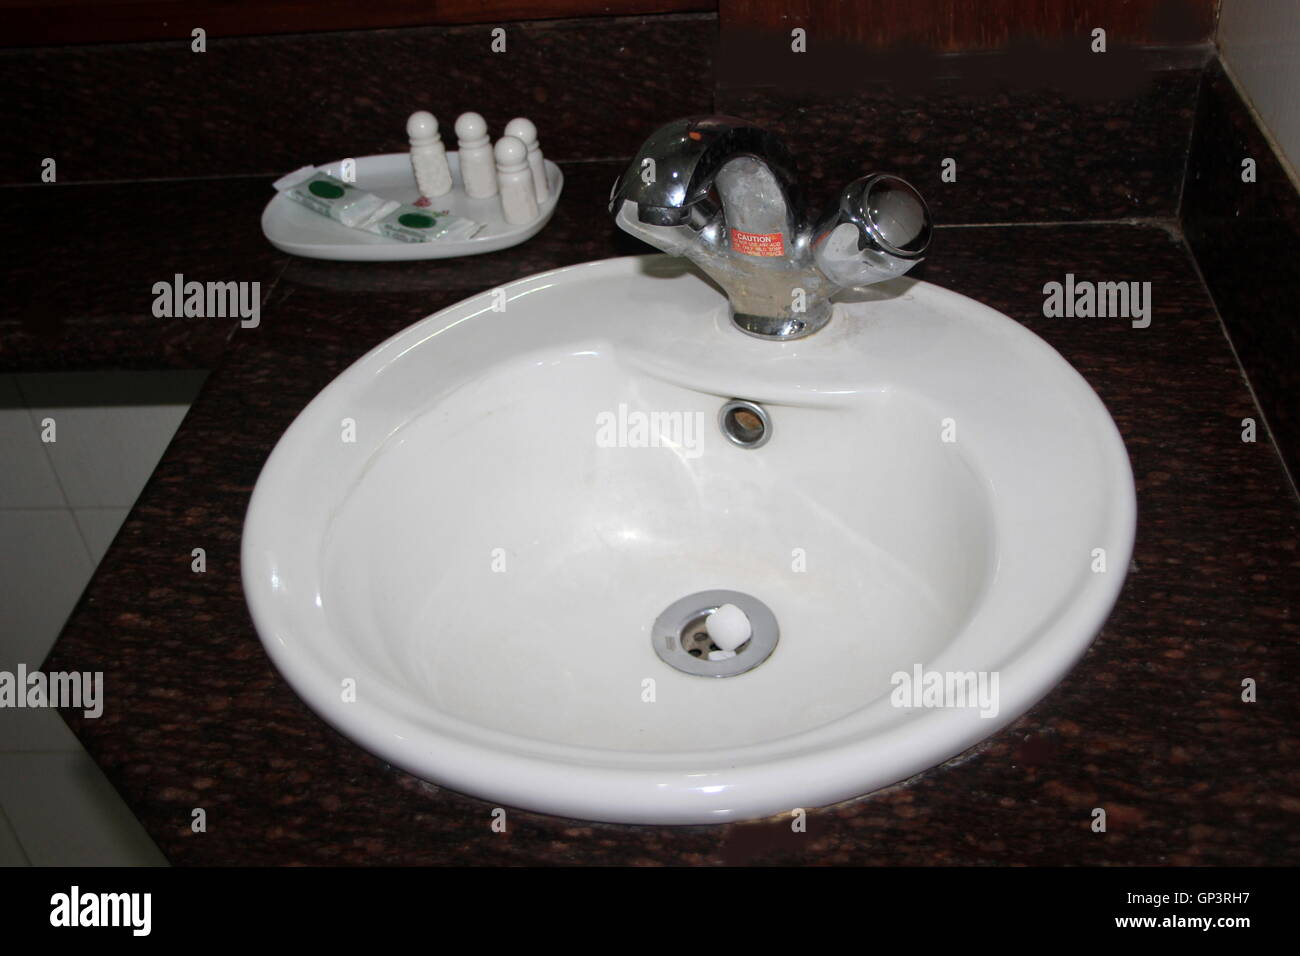 White china clay wash basin with faucet for hot and cold water and other cleaning accessories - Stock Image